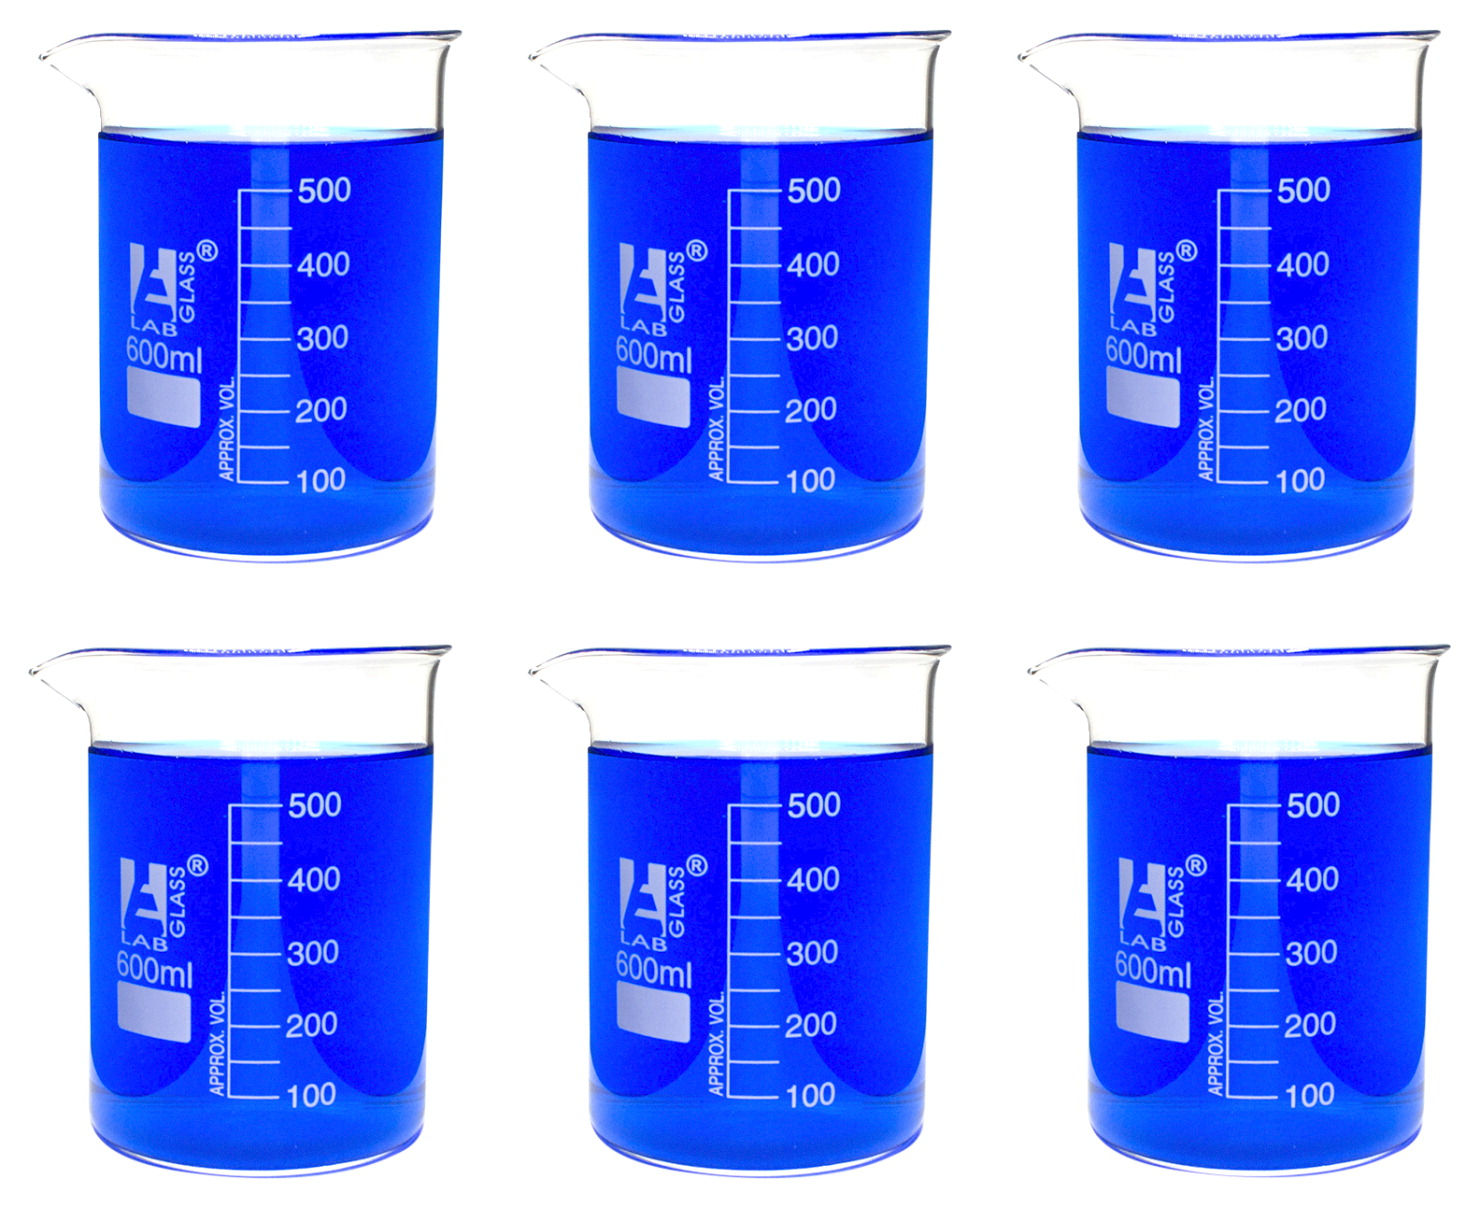 Eisco 600mL Borosilicate Glass Beakers with Spout, Low Form, Pack of 6